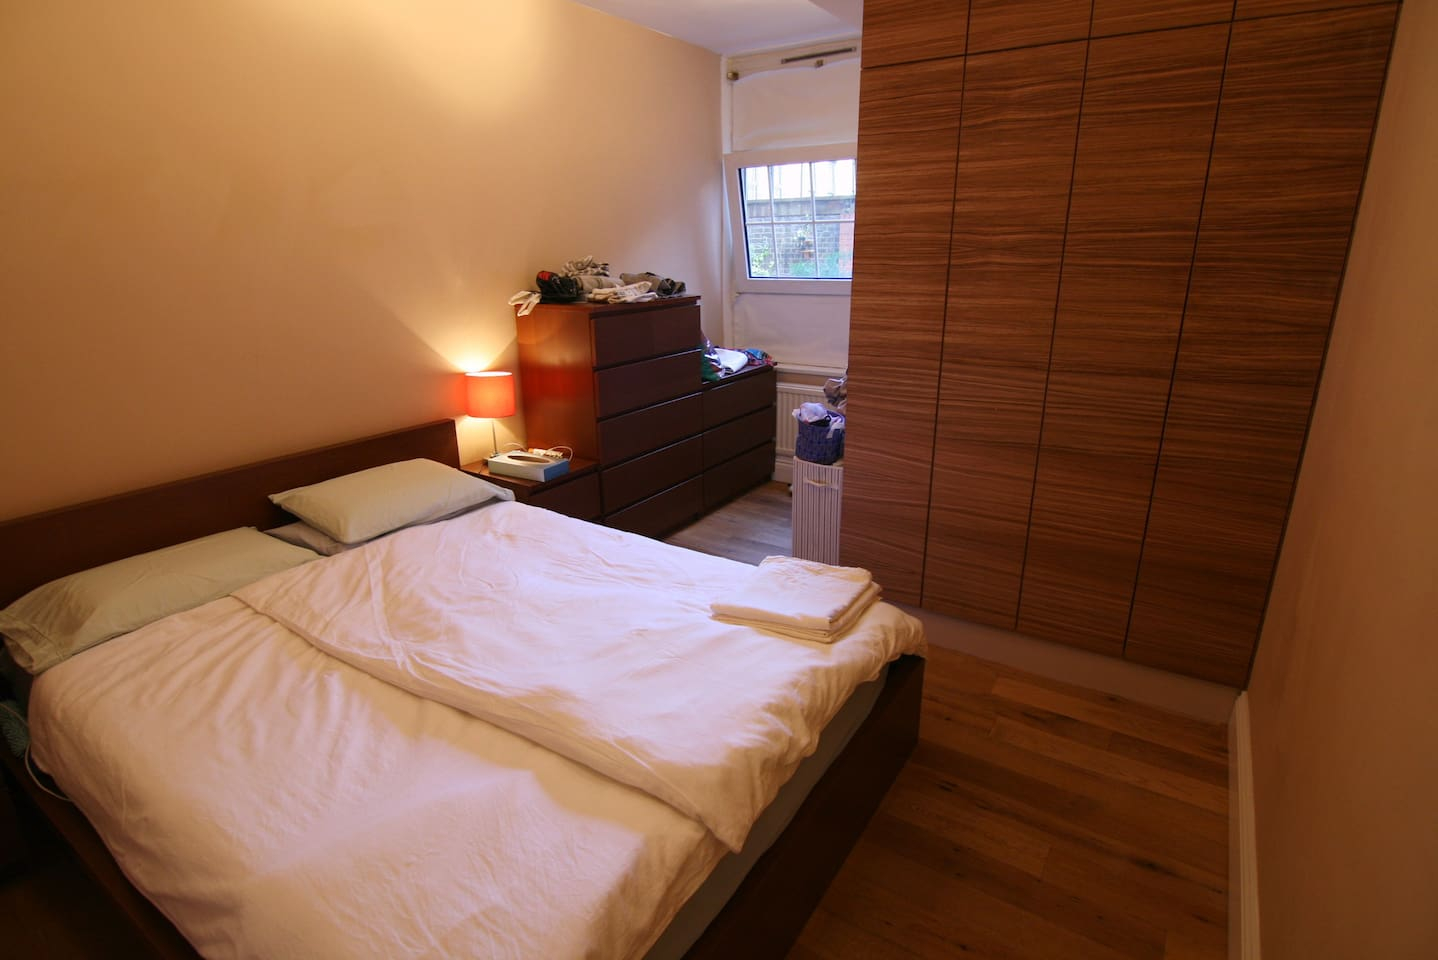 King size bed for 2 -